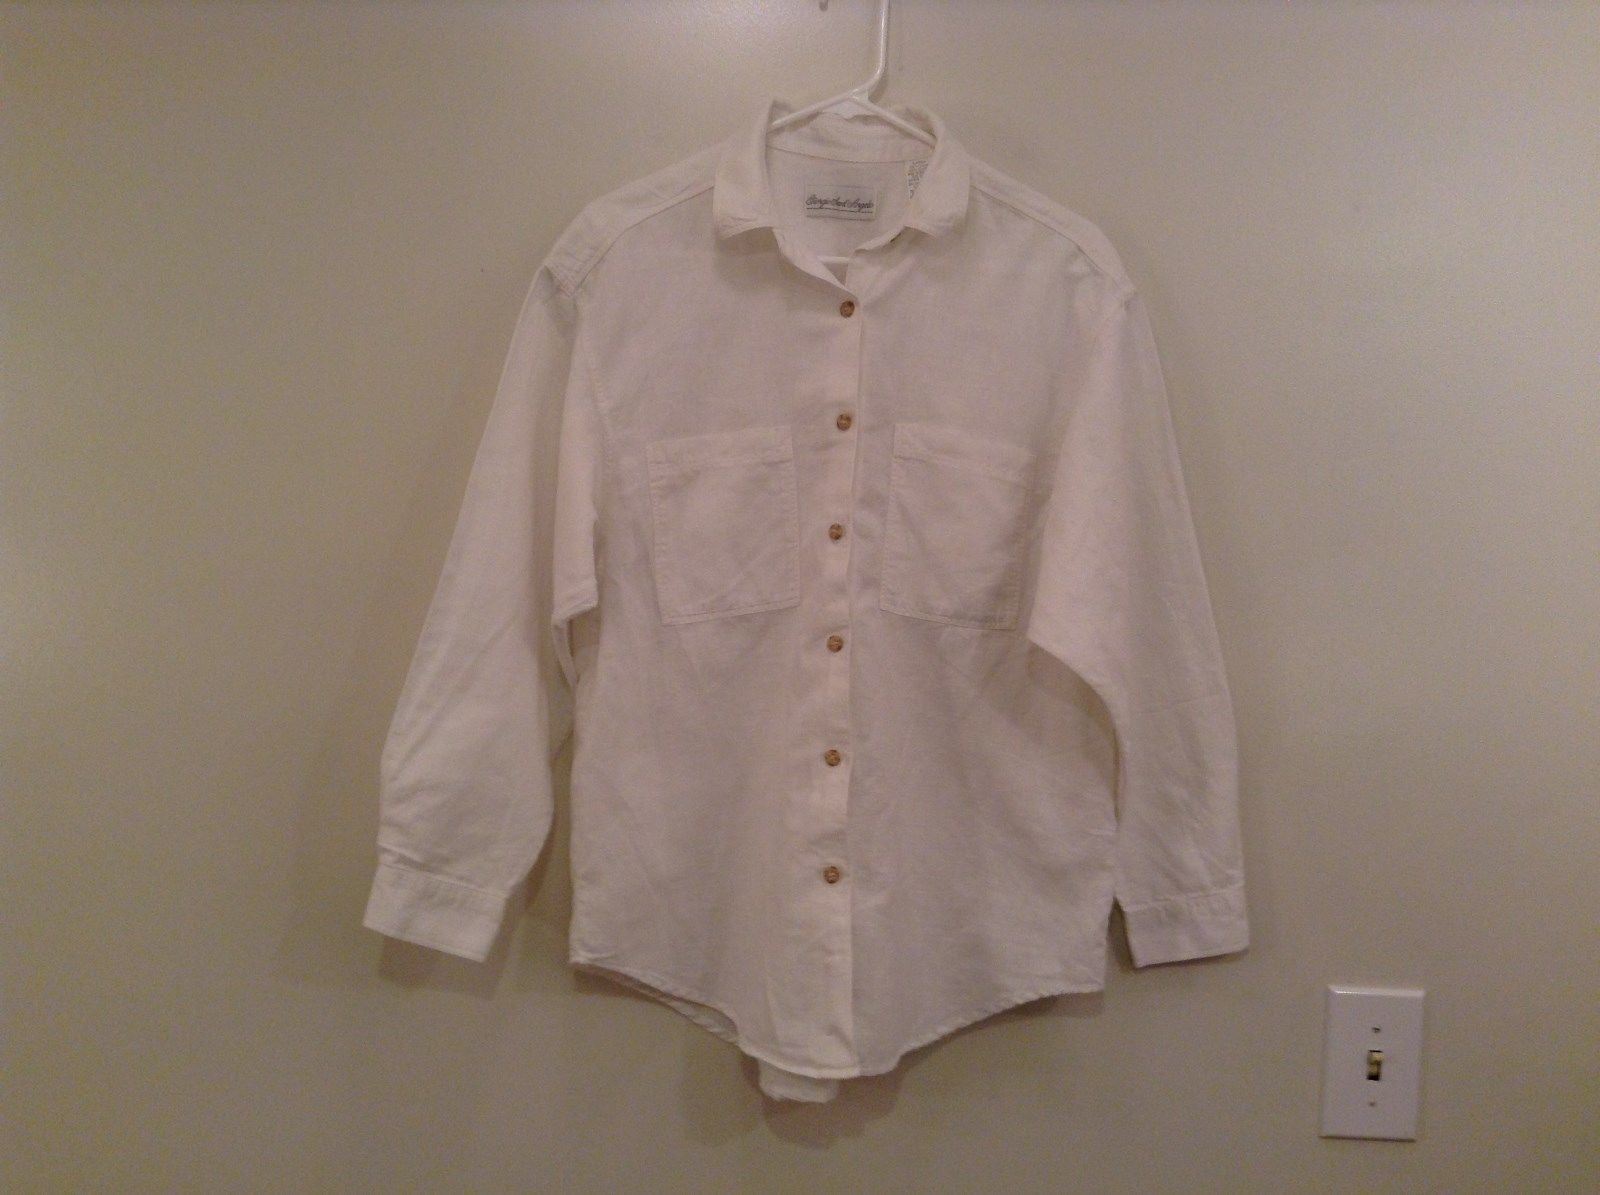 White Button Up Long Sleeve Shirt Giorgio Sant Angelo Size Large 2 Chest Pockets